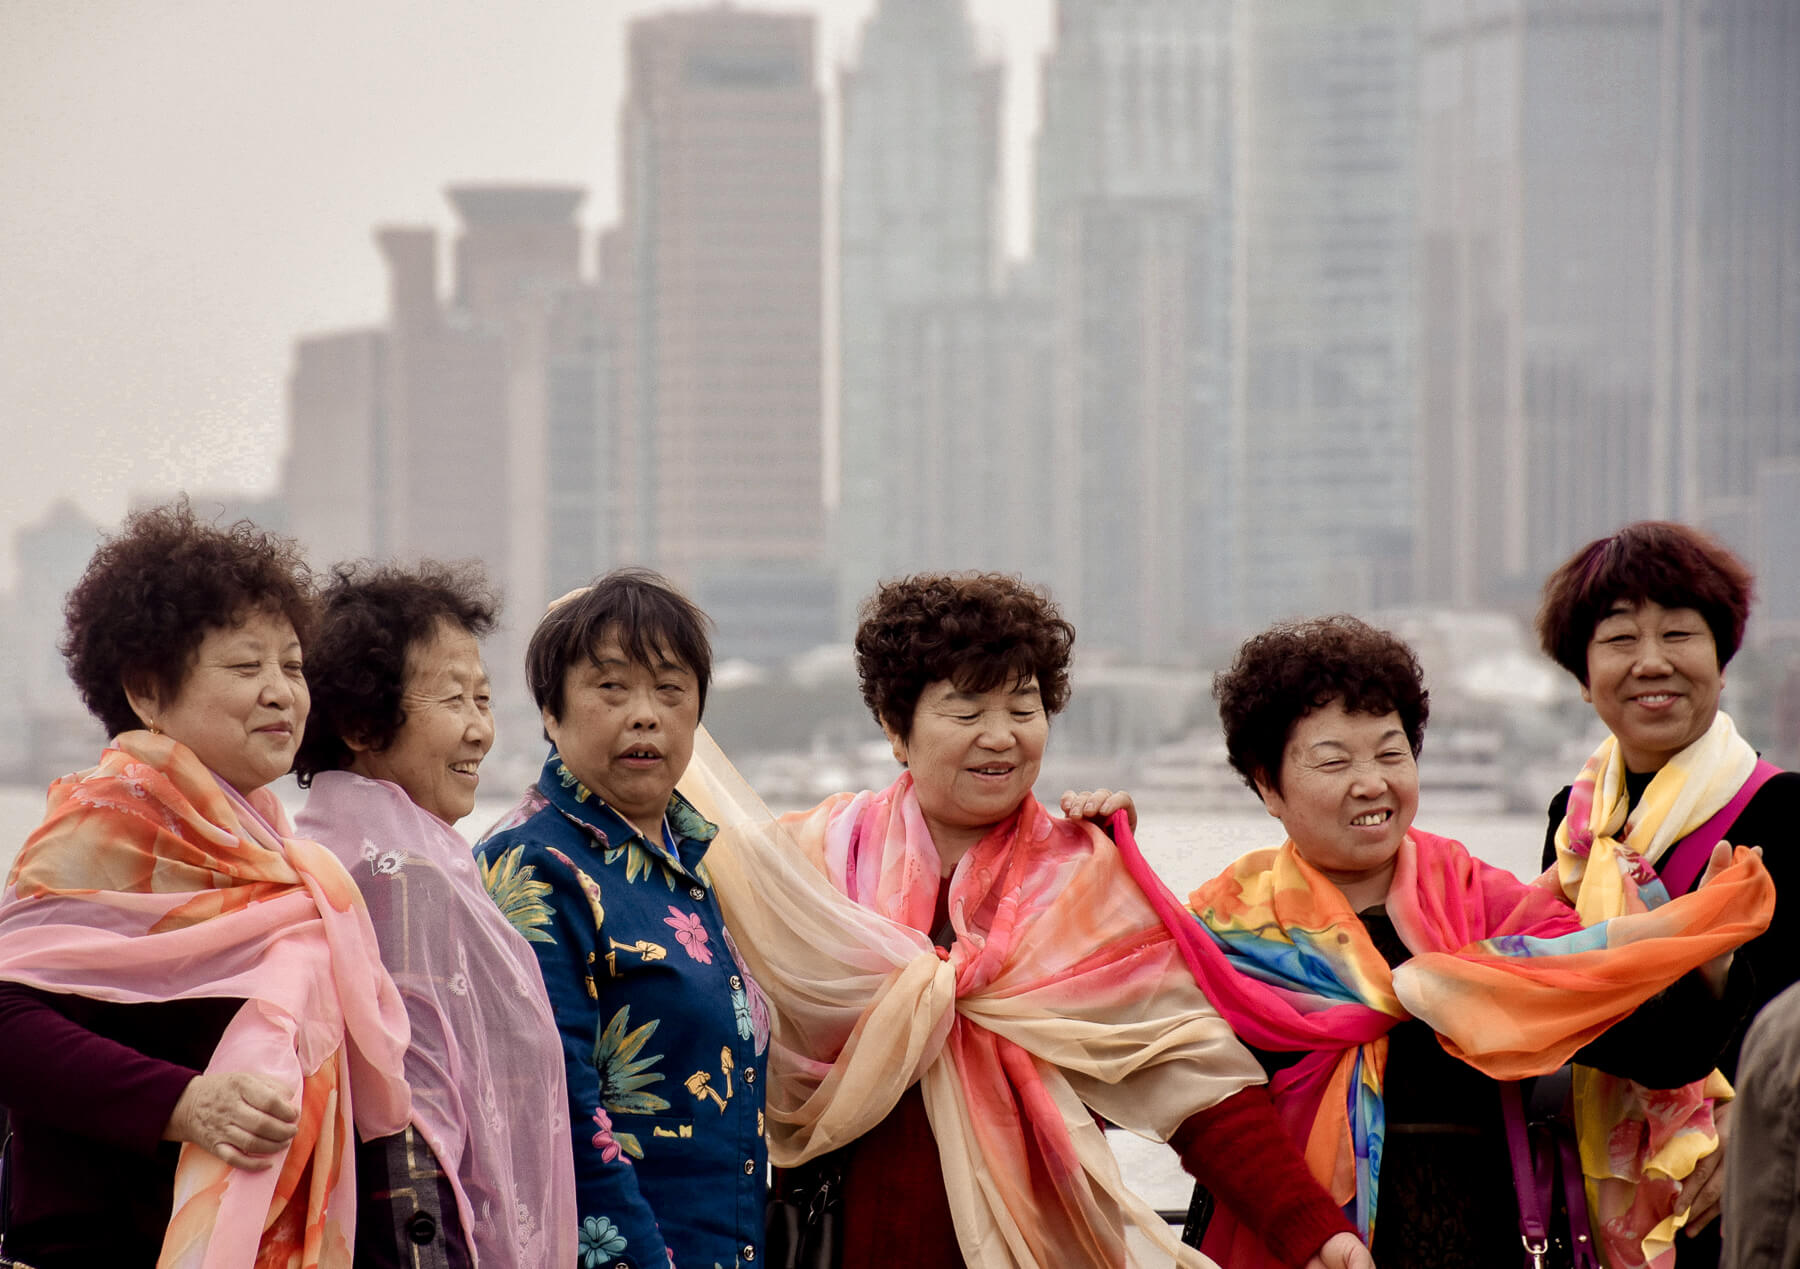 A group of 6 elderly Chinese ladies posing in front of the Bund in Shanghai - All wearing colourful scarfs.